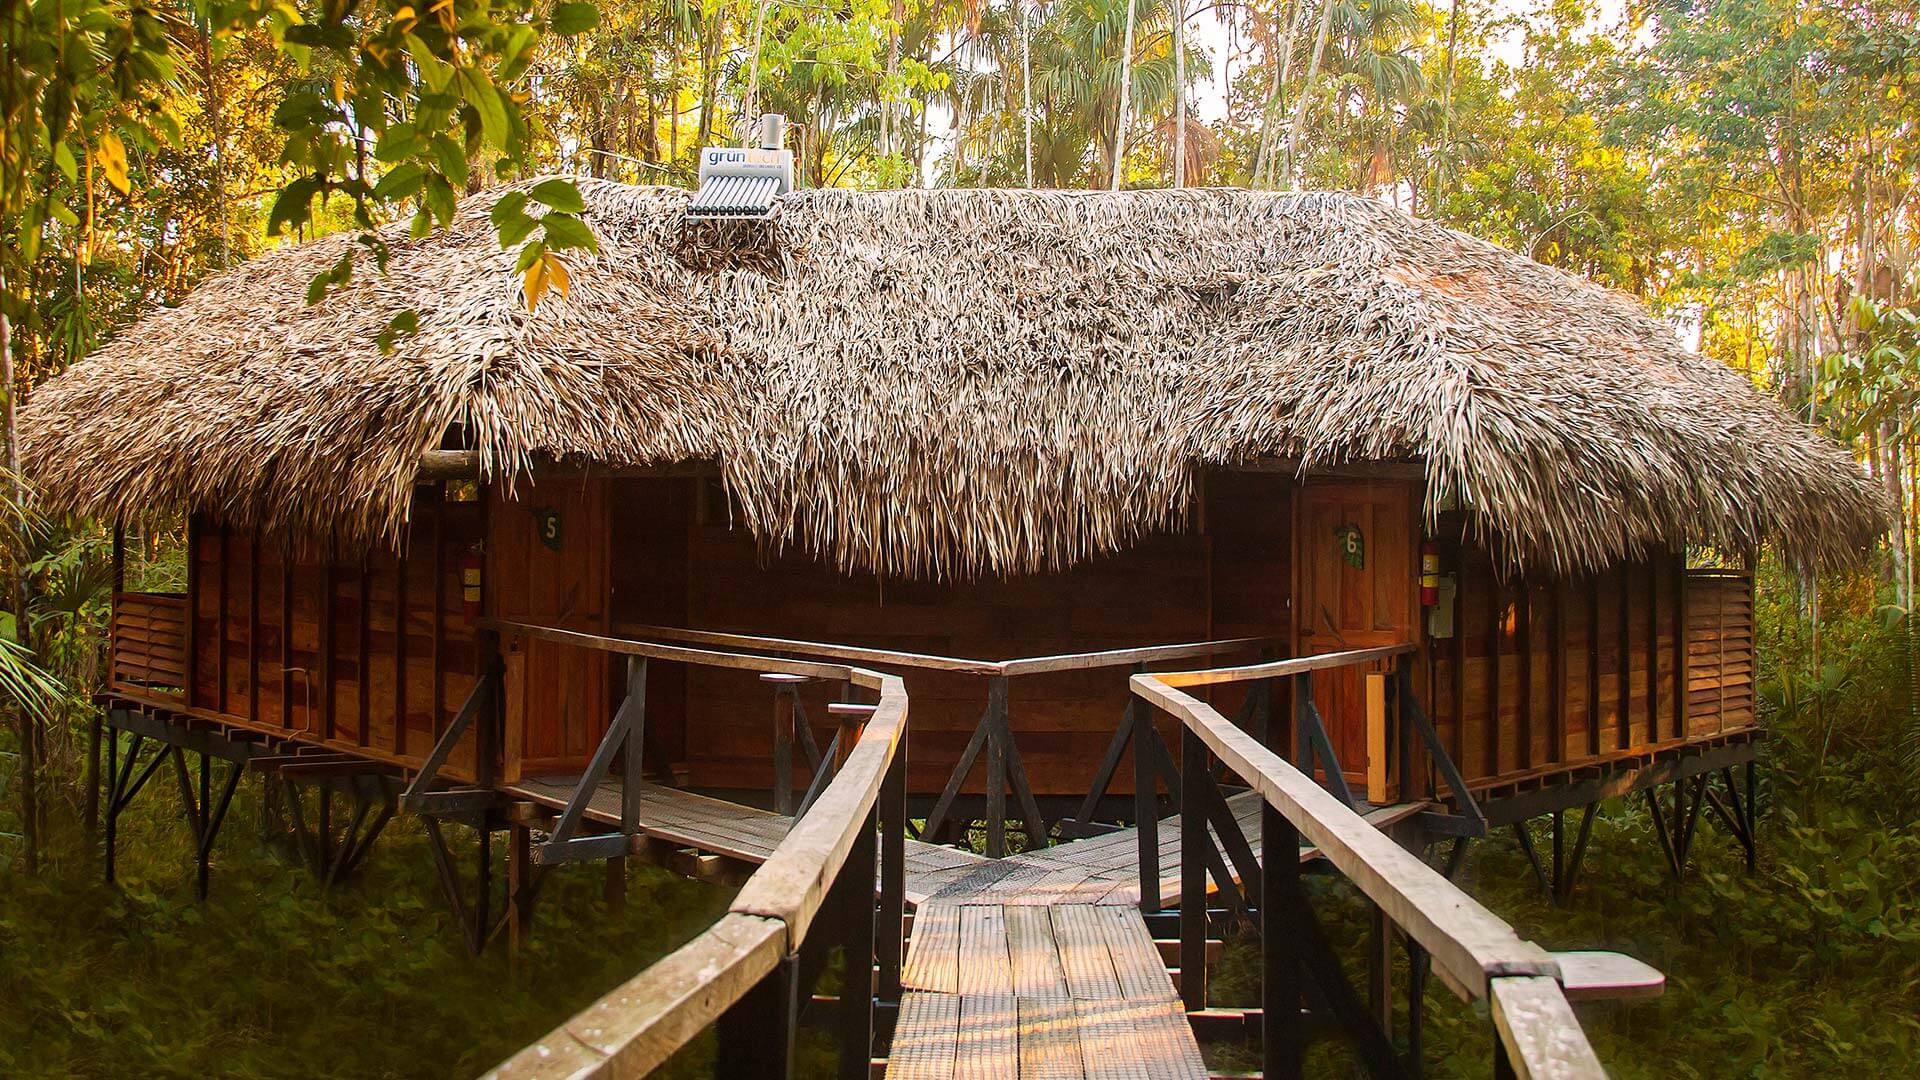 thatched roof lodge cabins in ecuador amazon rainforest